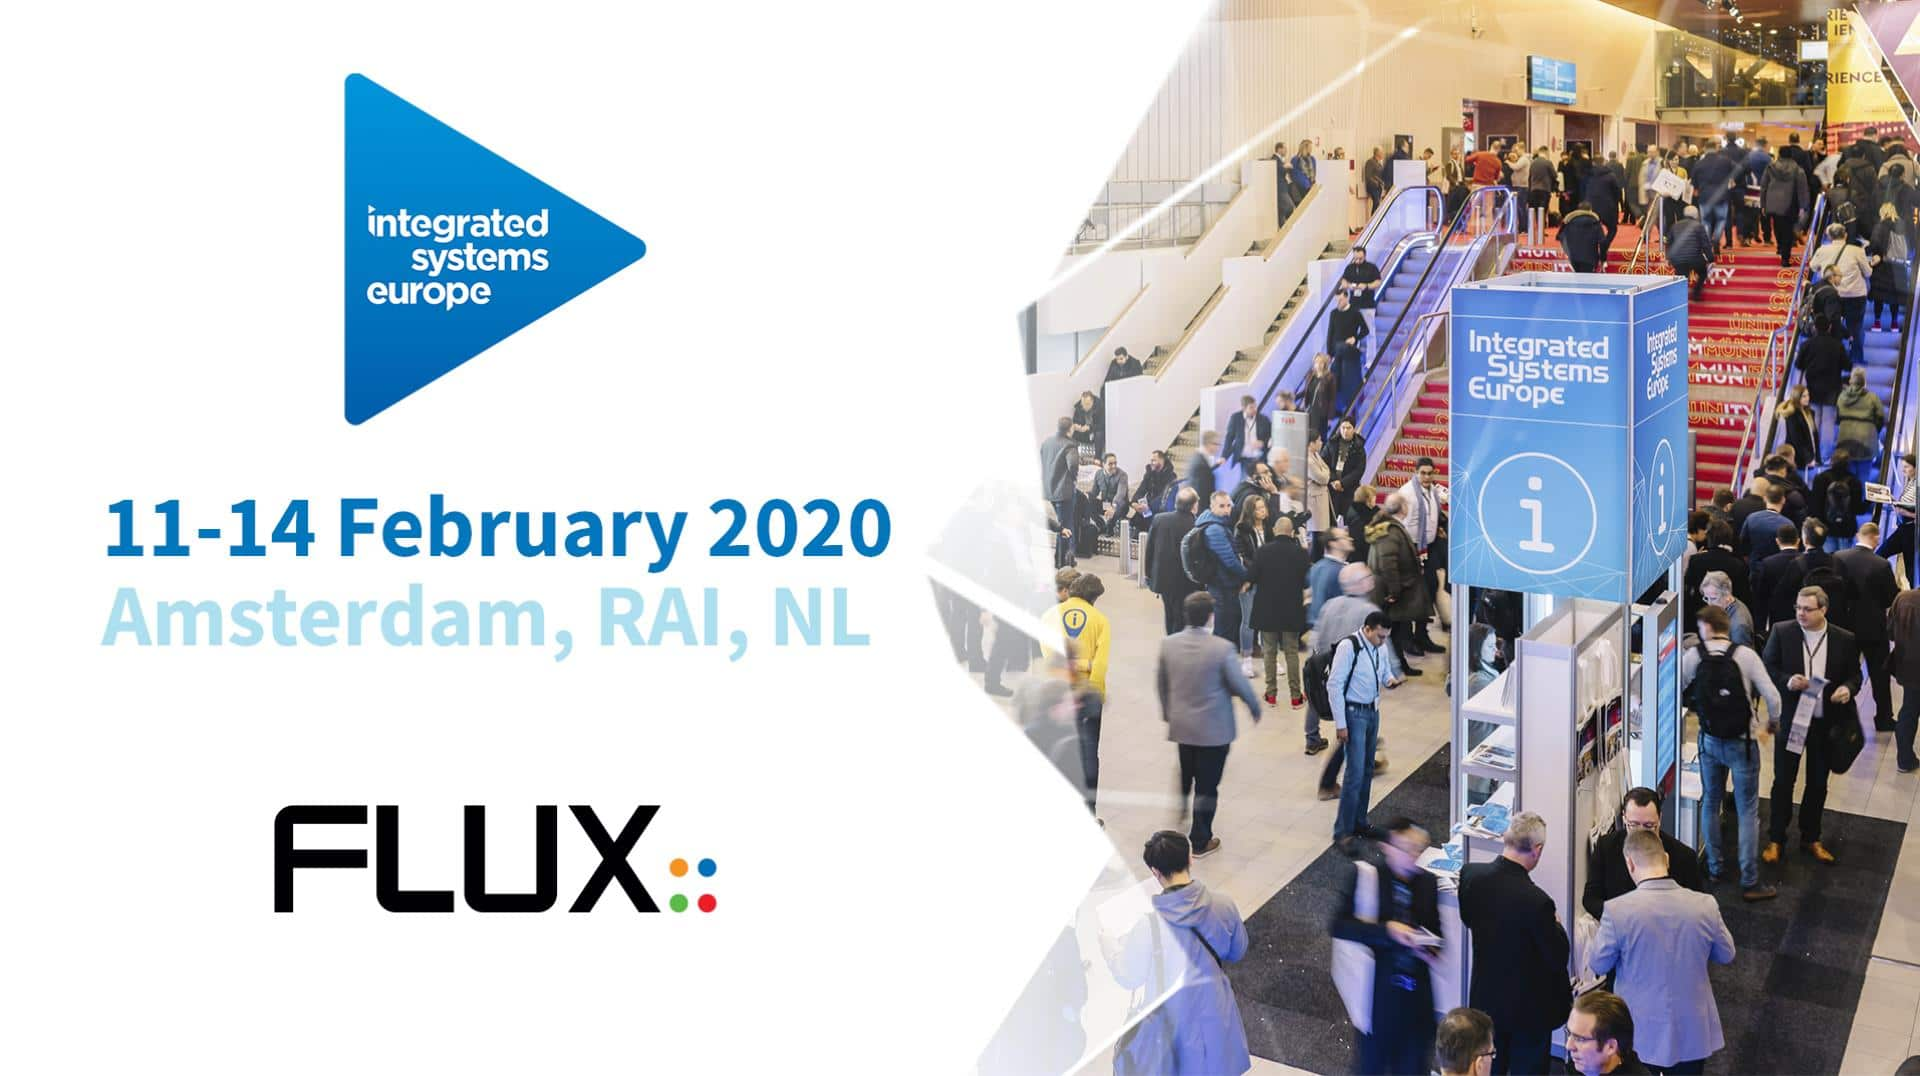 ISE 2020 Amsterdam February 11-14 at the RAI Amsterdam Convention Centre